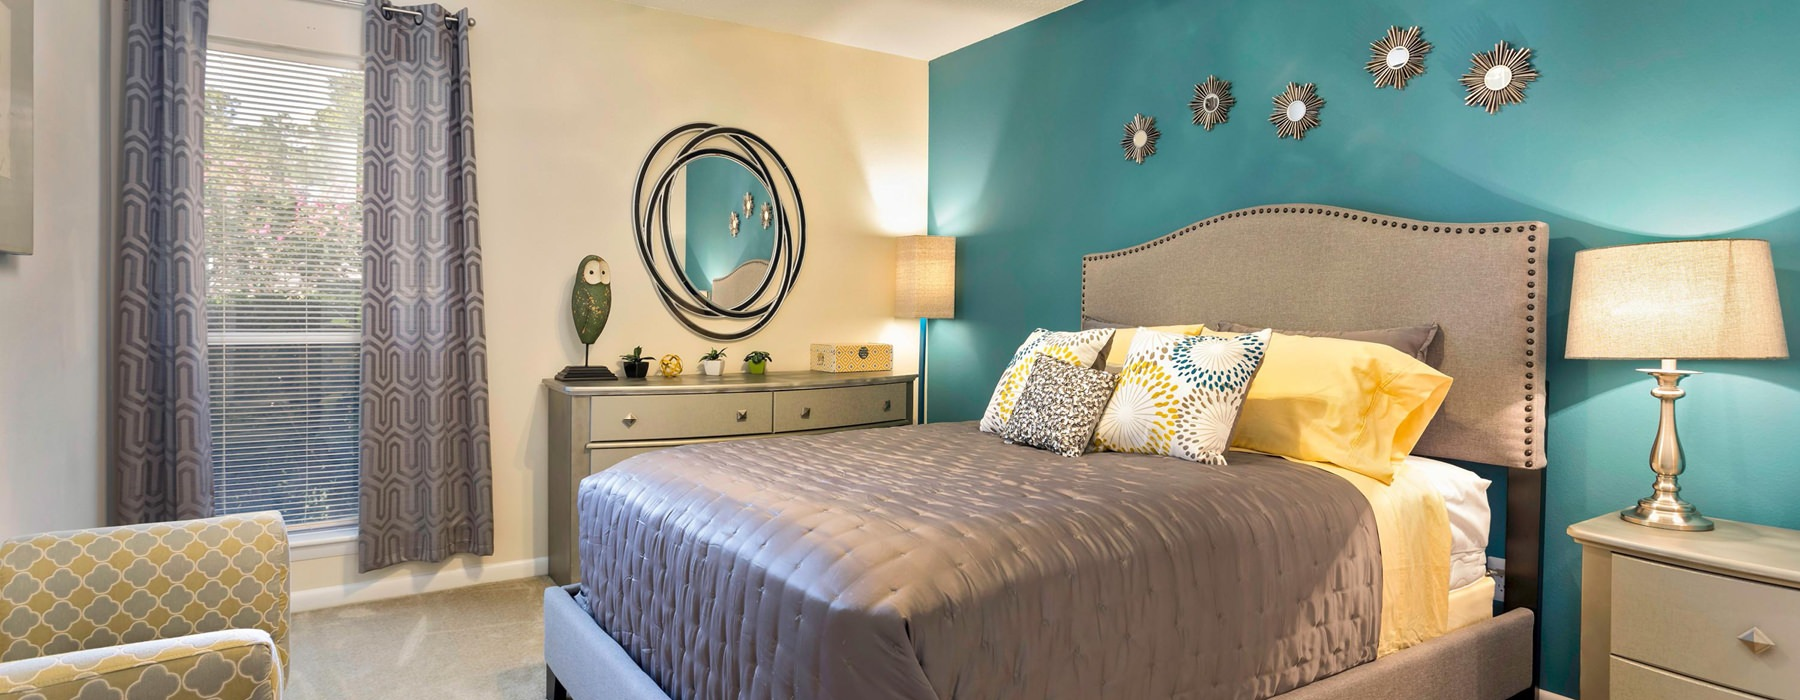 well lit bedroom with accent wall, lighted ceiling fan and window